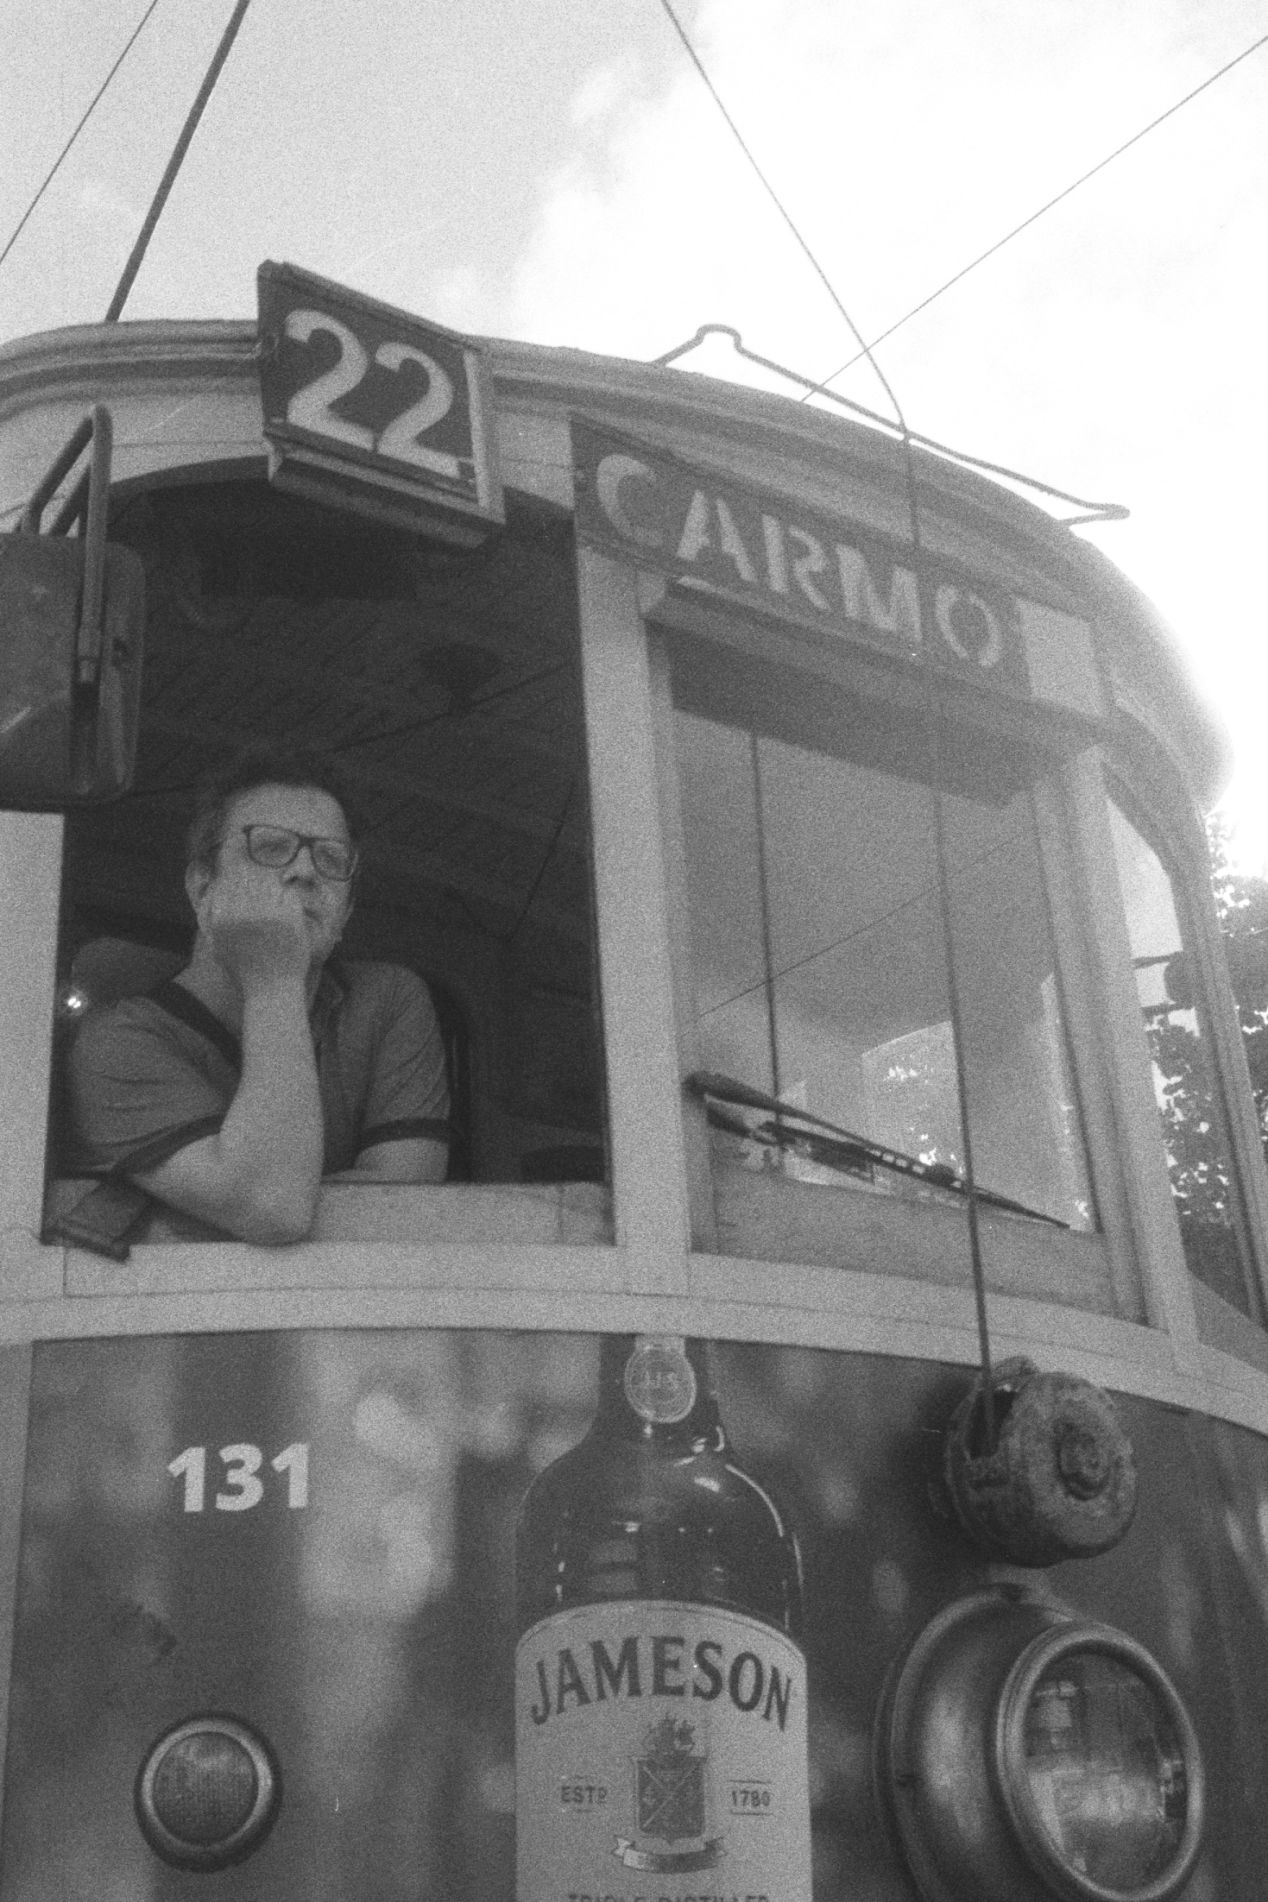 Streetcar in Downtown. Rollei 35 SE.